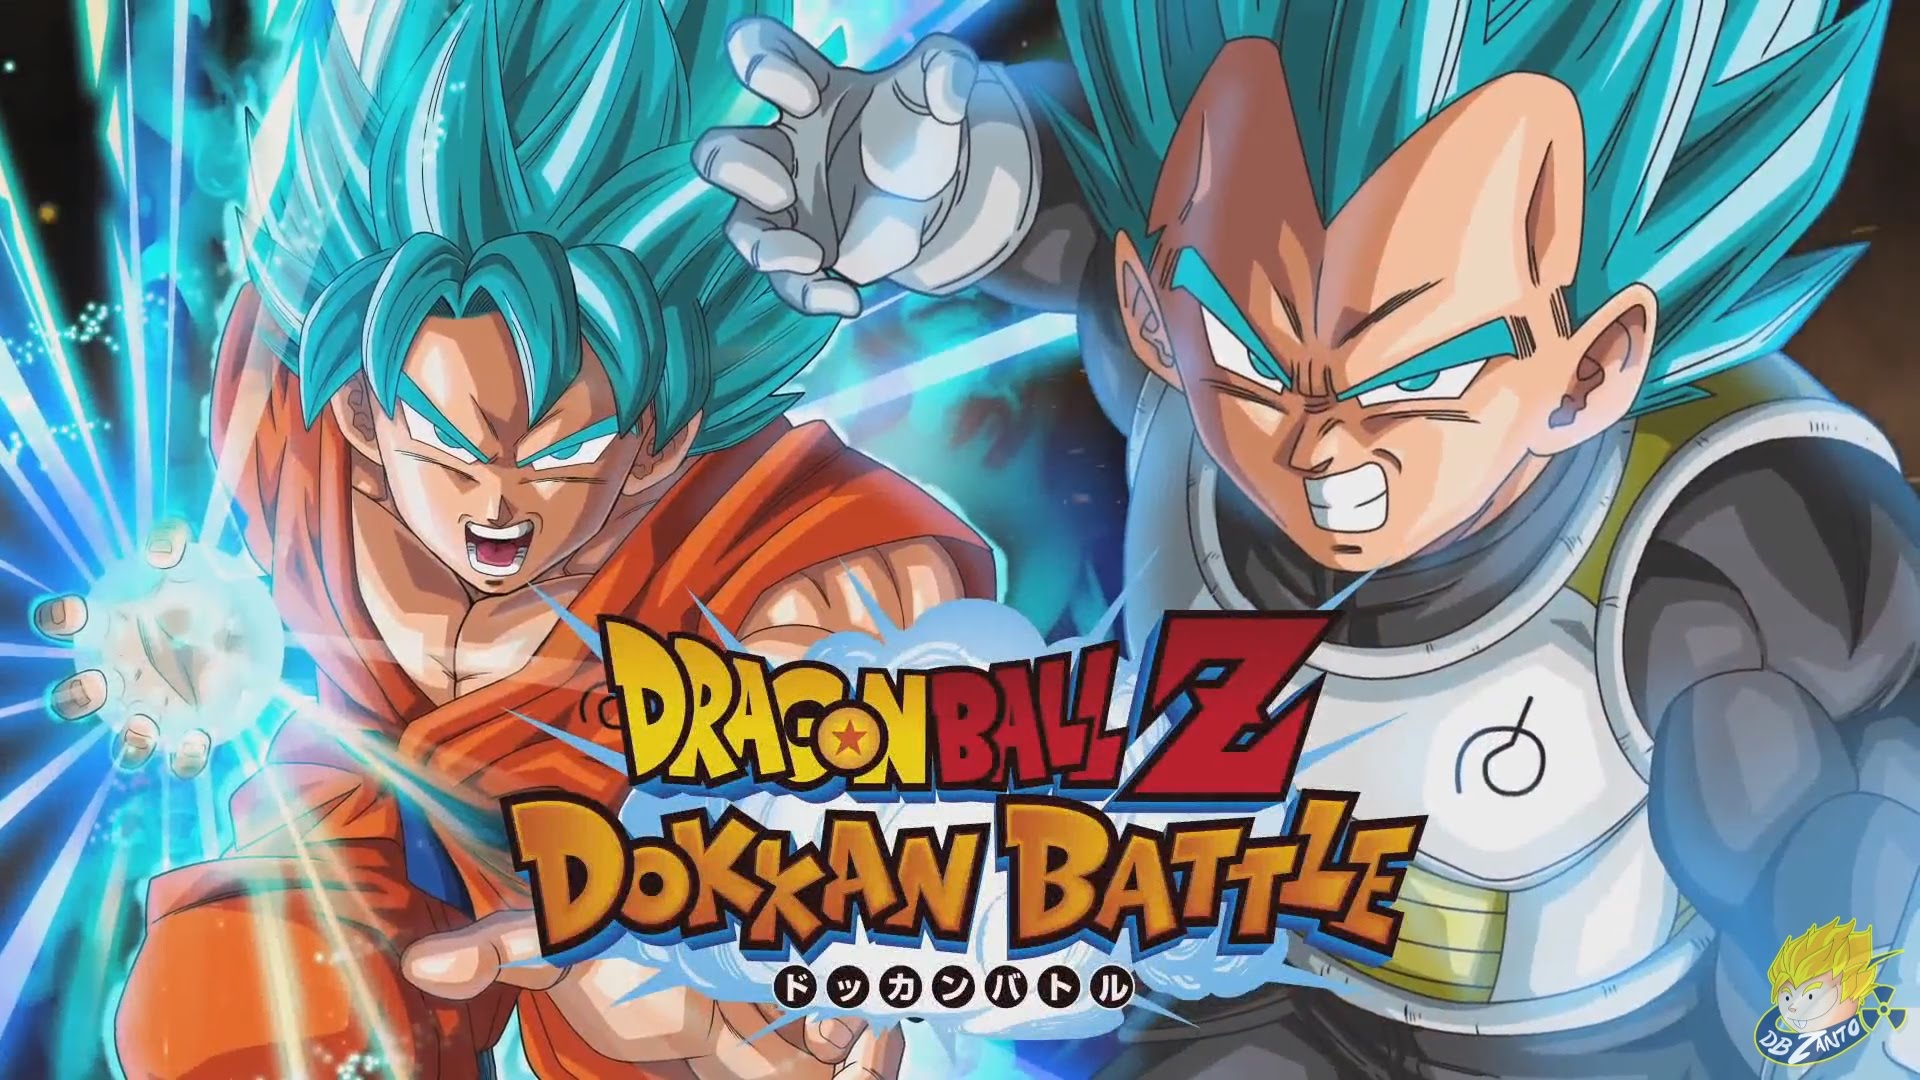 DRAGON BALL Z DOKKAN BATTLE ddd